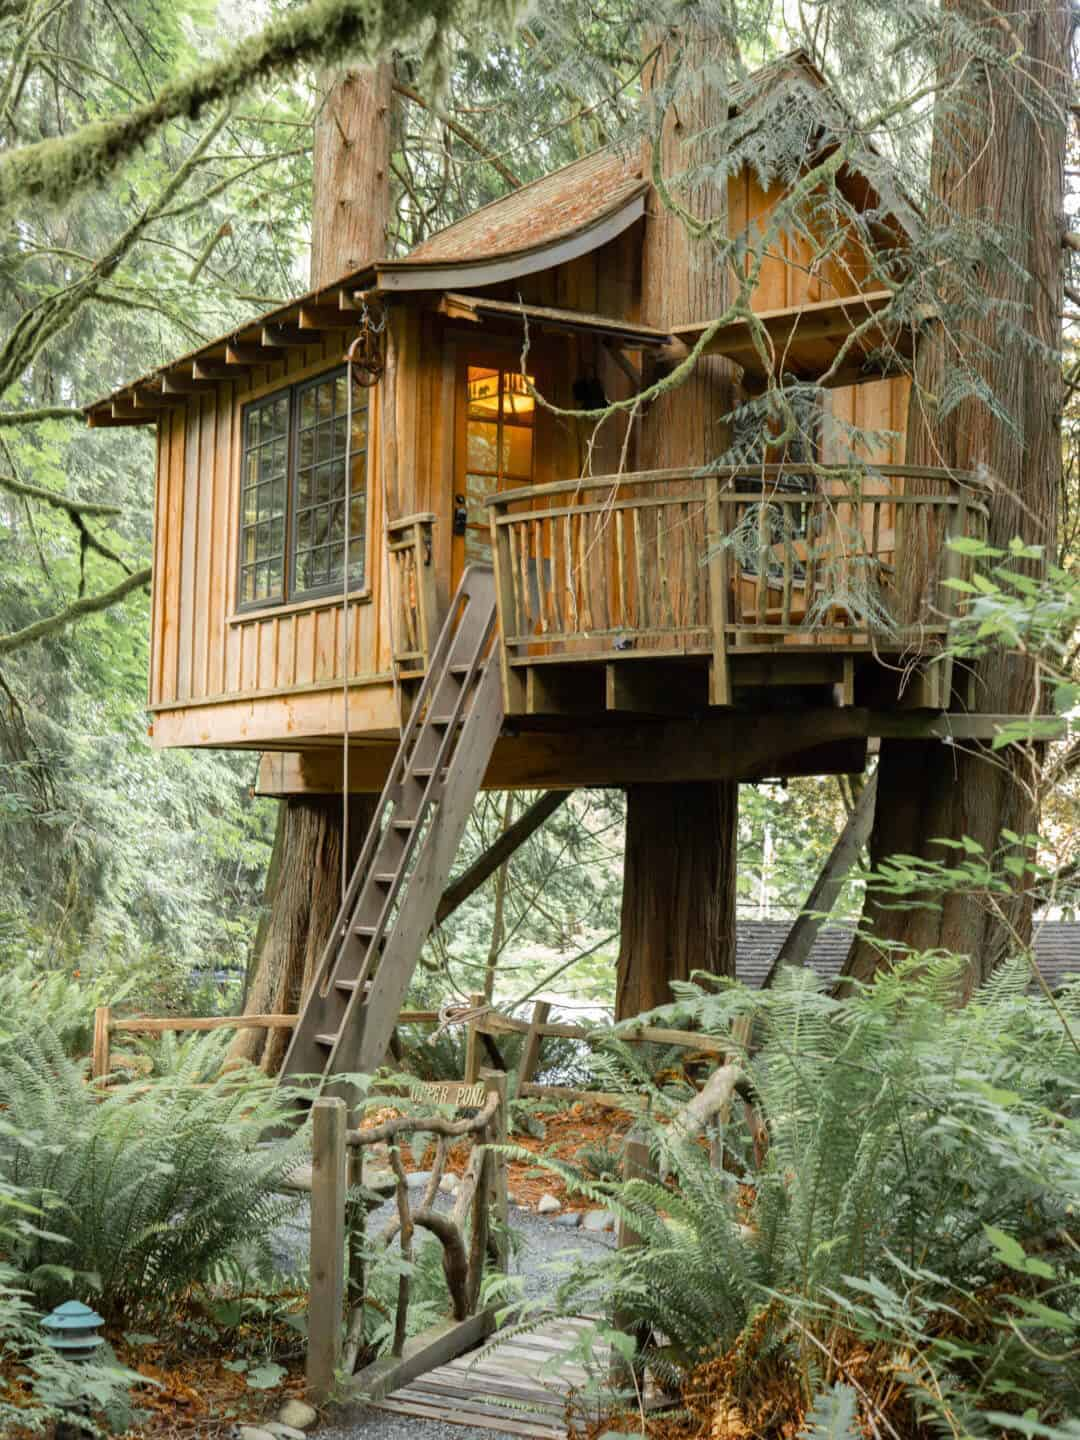 Treehouse Rentals Near Me Treehouse Rentals In Washington Or Bc Id